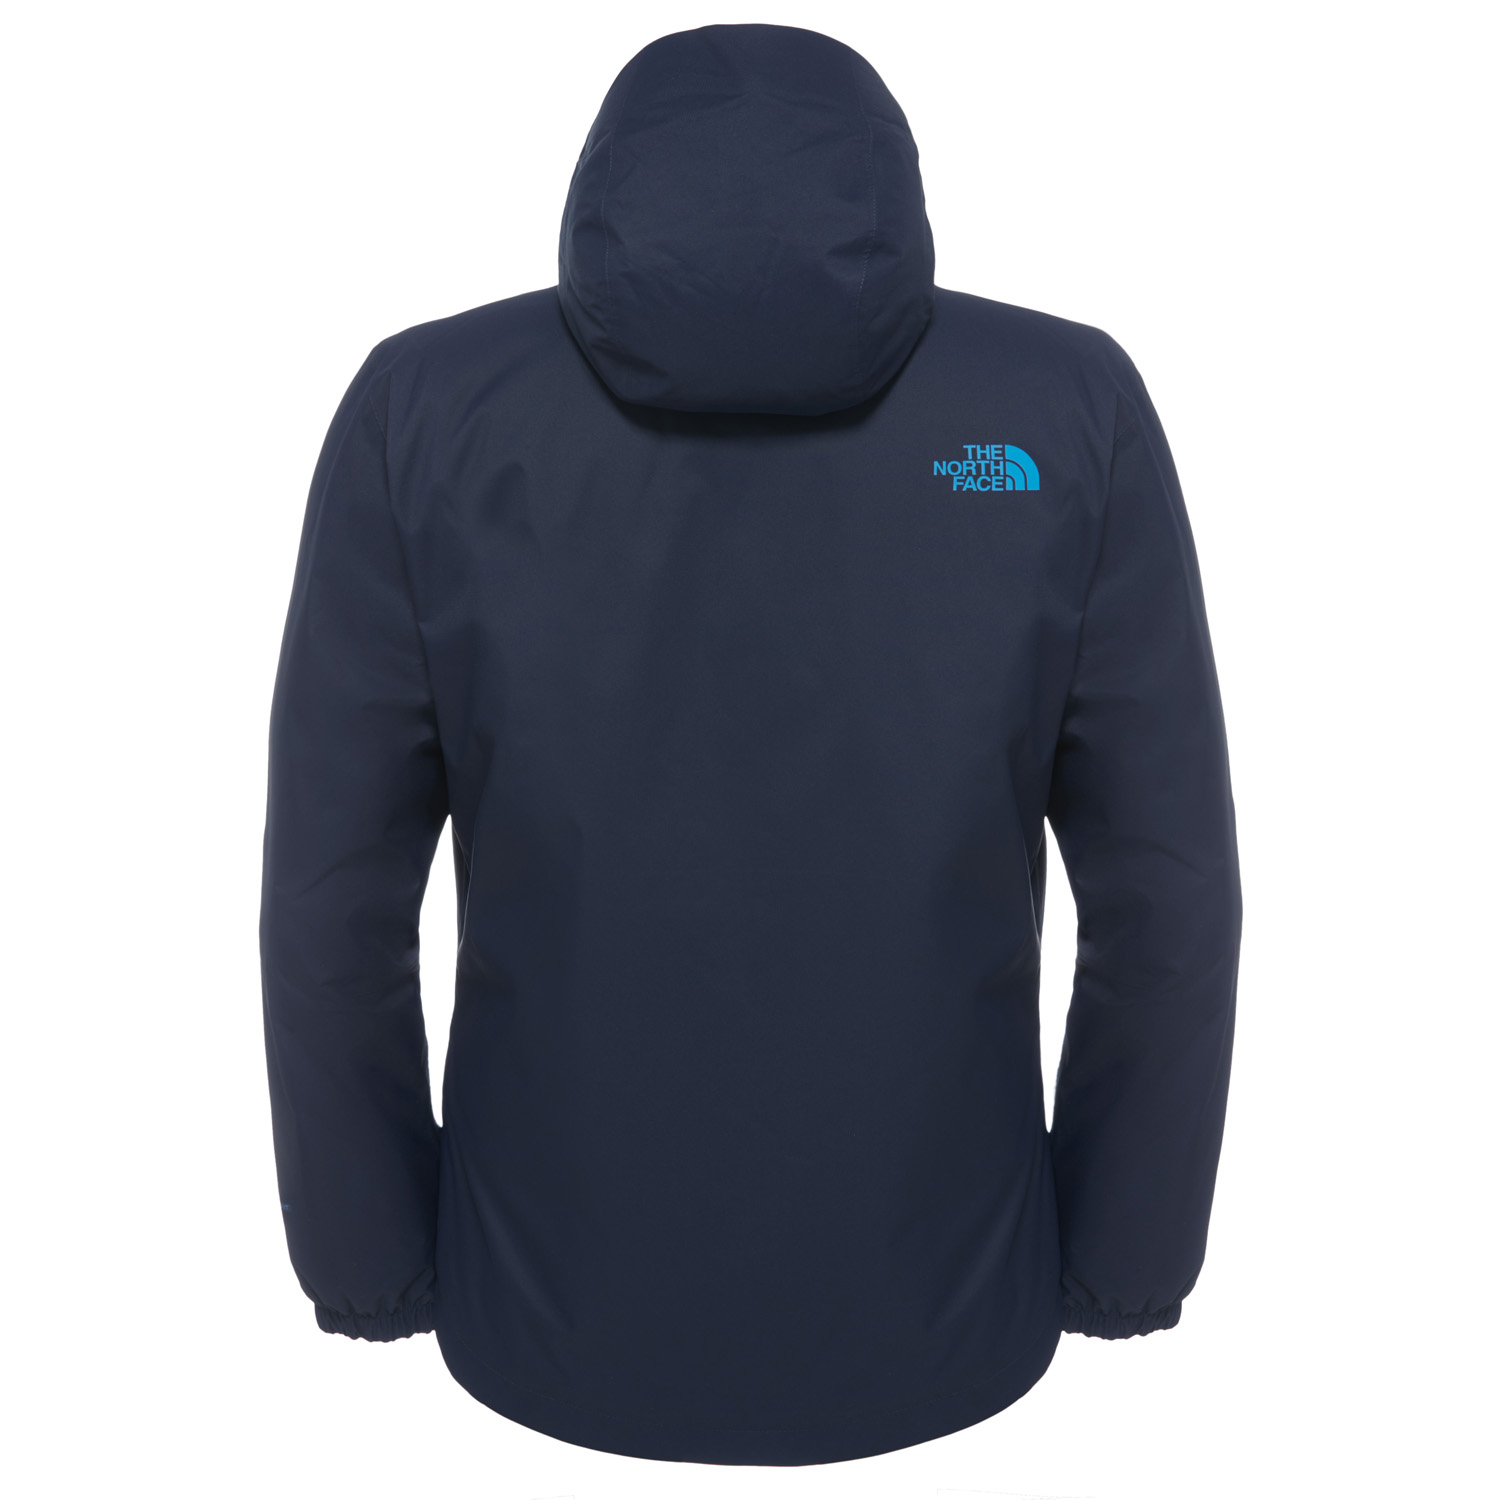 THE NORTH FACE TNF M QUEST INSULATED JKT - gallery 1 10d350be9f47